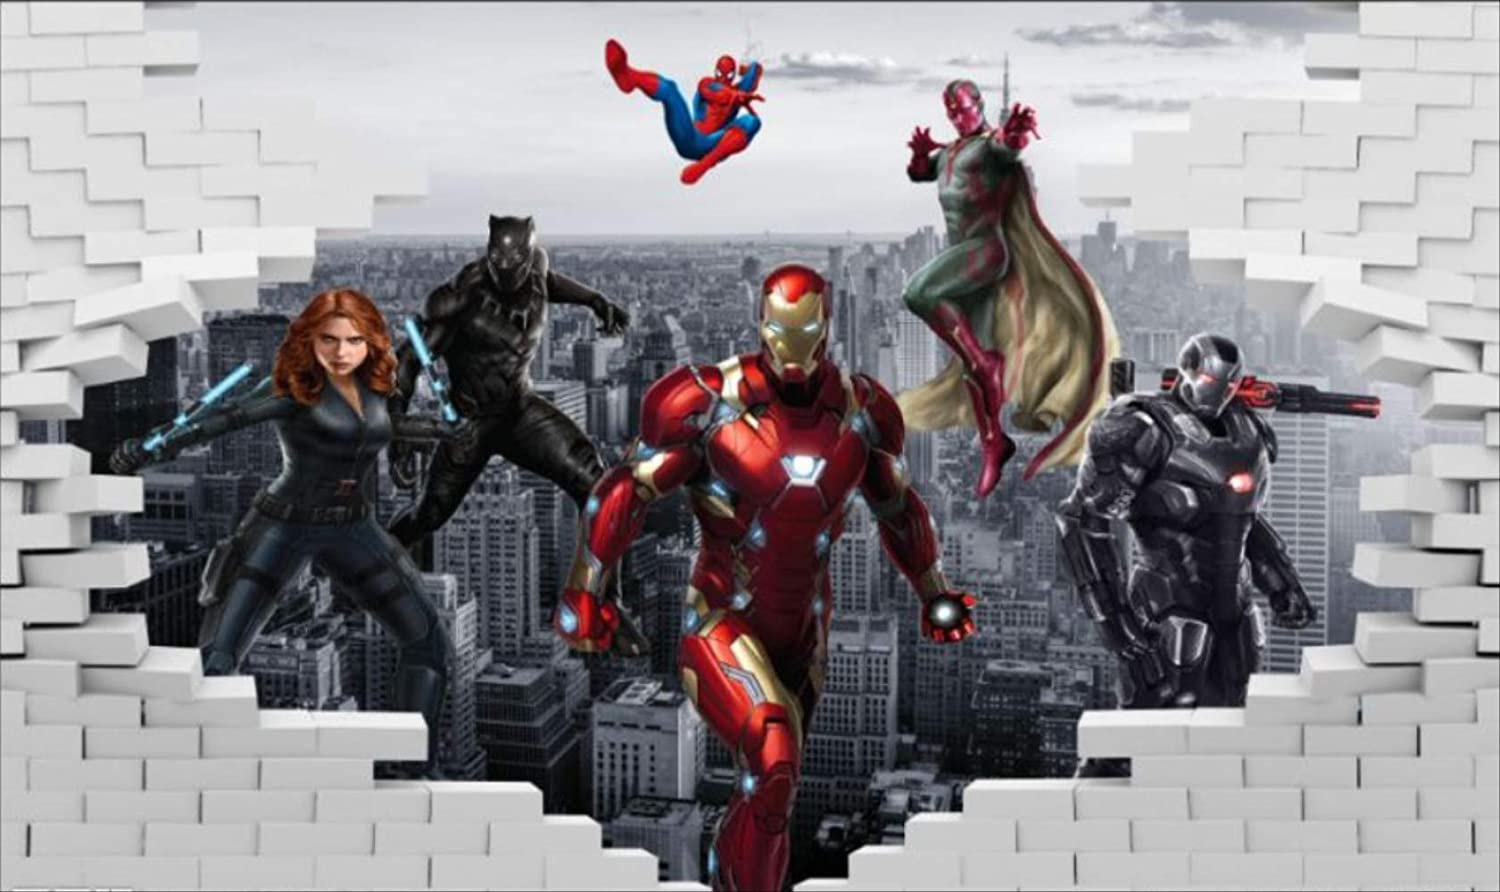 Amazon.com: Mural Wallpaper Avengers Photo Marvel Wallpaper hd 3D Broken  Wall City New York Marvel Black Widow Phantom War Machine Black Panther  Spider-Man Wall Mural BoyRestaurant bar Bedroom Living Room Designe: Home